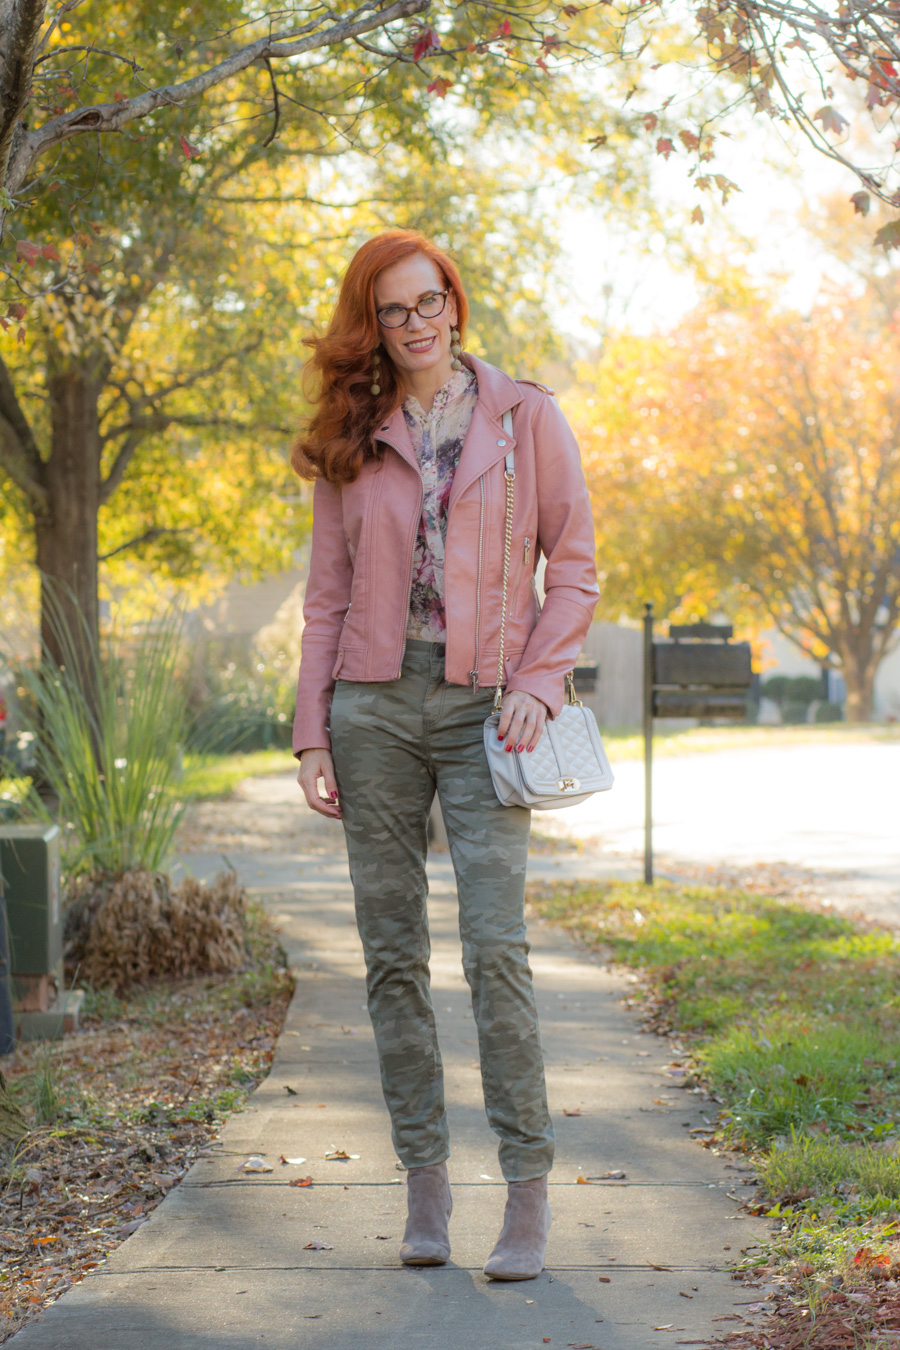 Camo, Floral and a Moto Jacket – Mixing Patterns